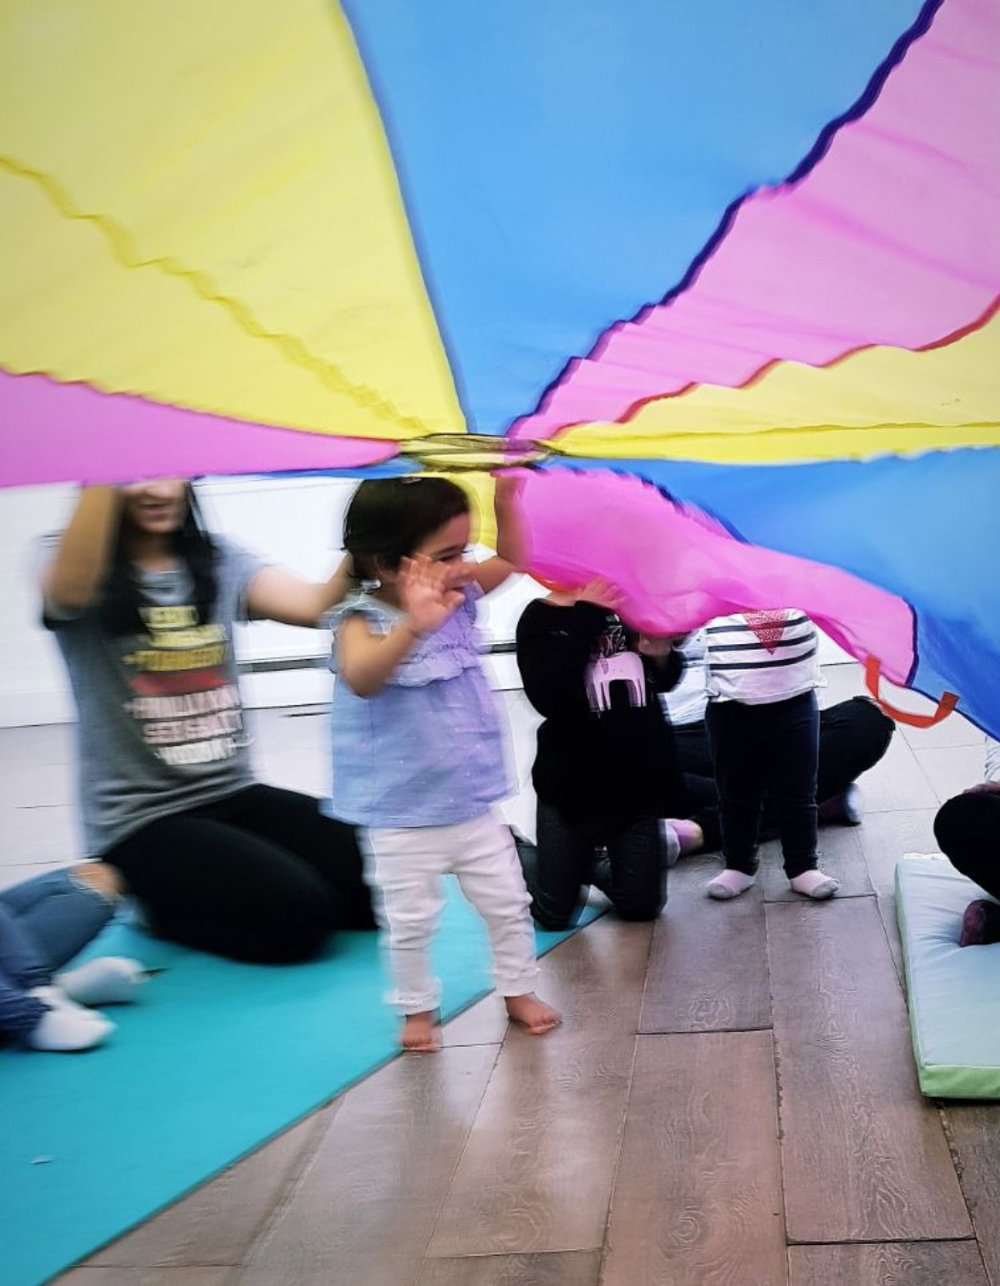 Live Music and Rhymes - This class offers a stimulating environment for your little one to explore live music sounds and baby sign language. Also, this class is a change for your child to interact with other babies. Research shows that music helps infants exposed to a rich acoustic environment by physically boosting brain development.Offered: Mondays and Wednesdays at 10:00Sign up: You can trial the class for £12.90 click here.Instructor: Rhianon/Oleg/James